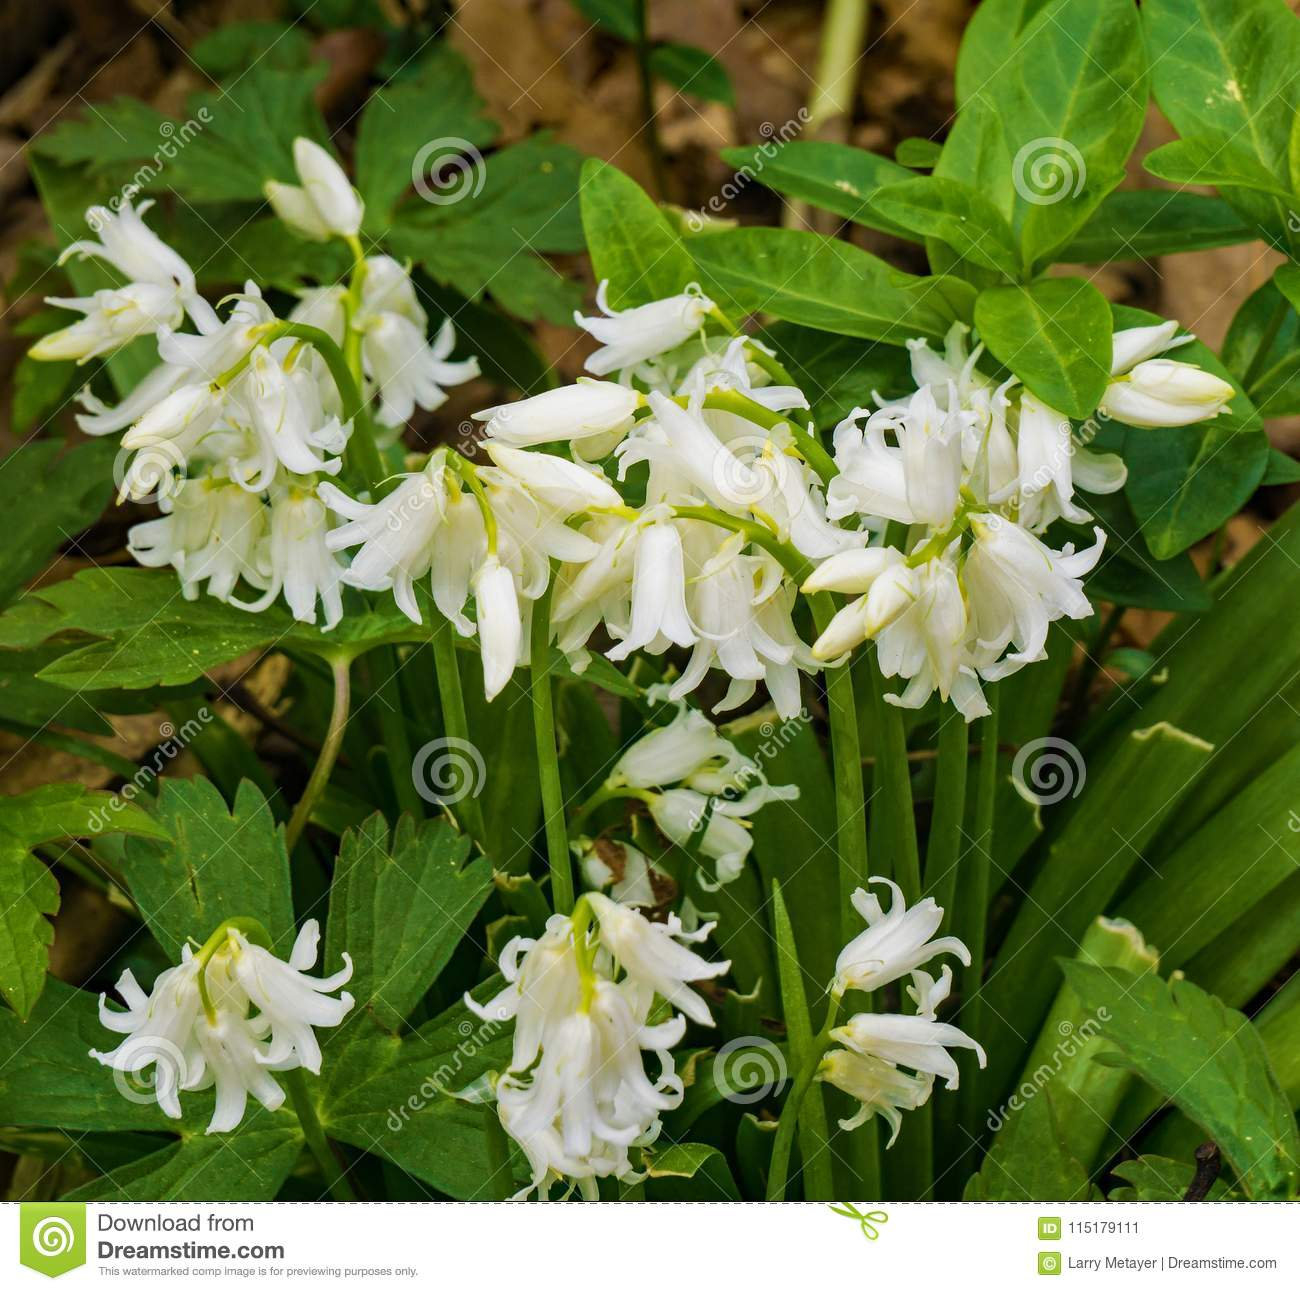 White Bluebells Flowers Stock Image Image Of Delicate 115179111